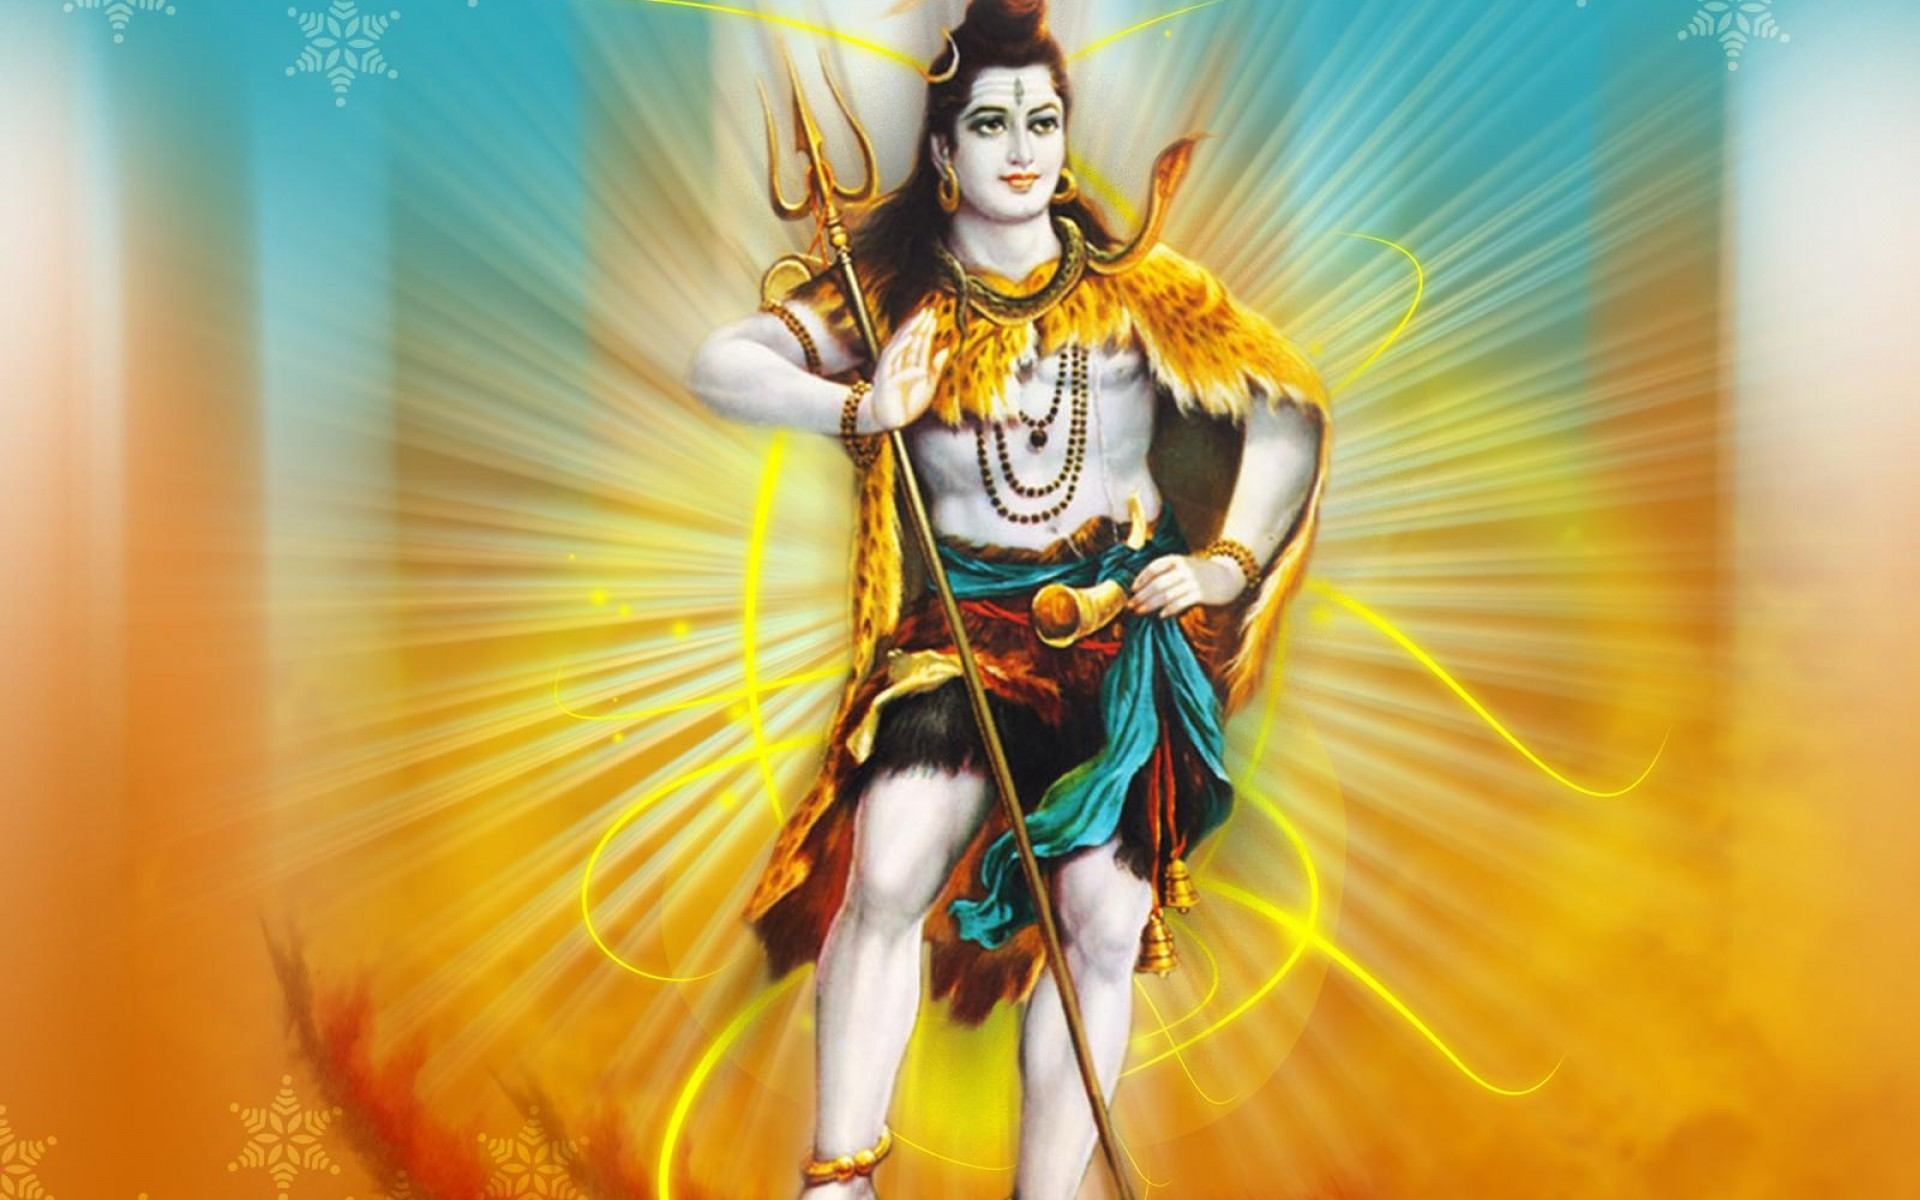 1920x1200 1080p Lord Shiva Wallpapers | HD God Shiva Wallpapers Images Download